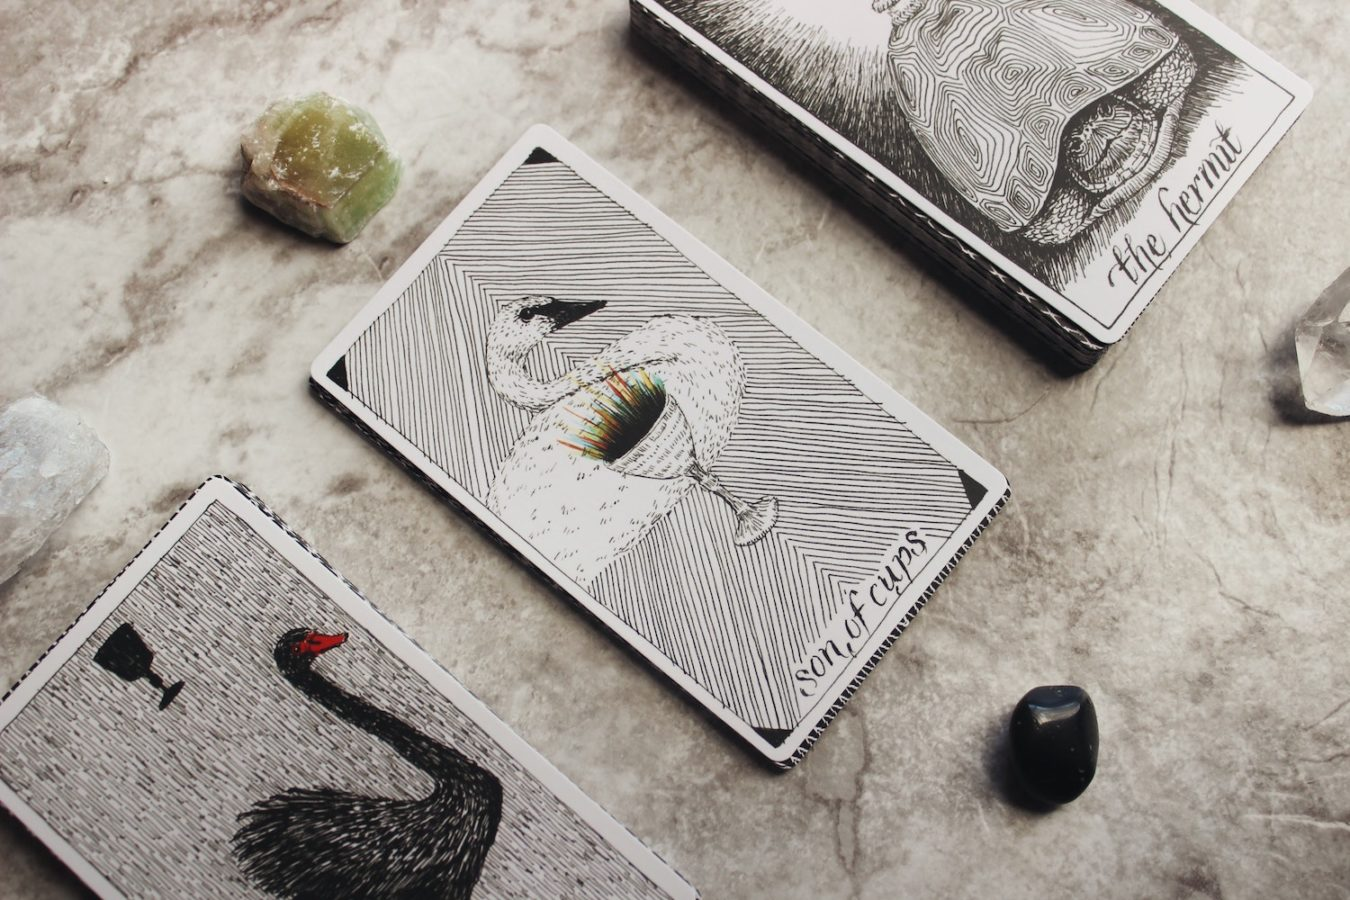 Tarot in Singapore is booming, so here's where to get a reading